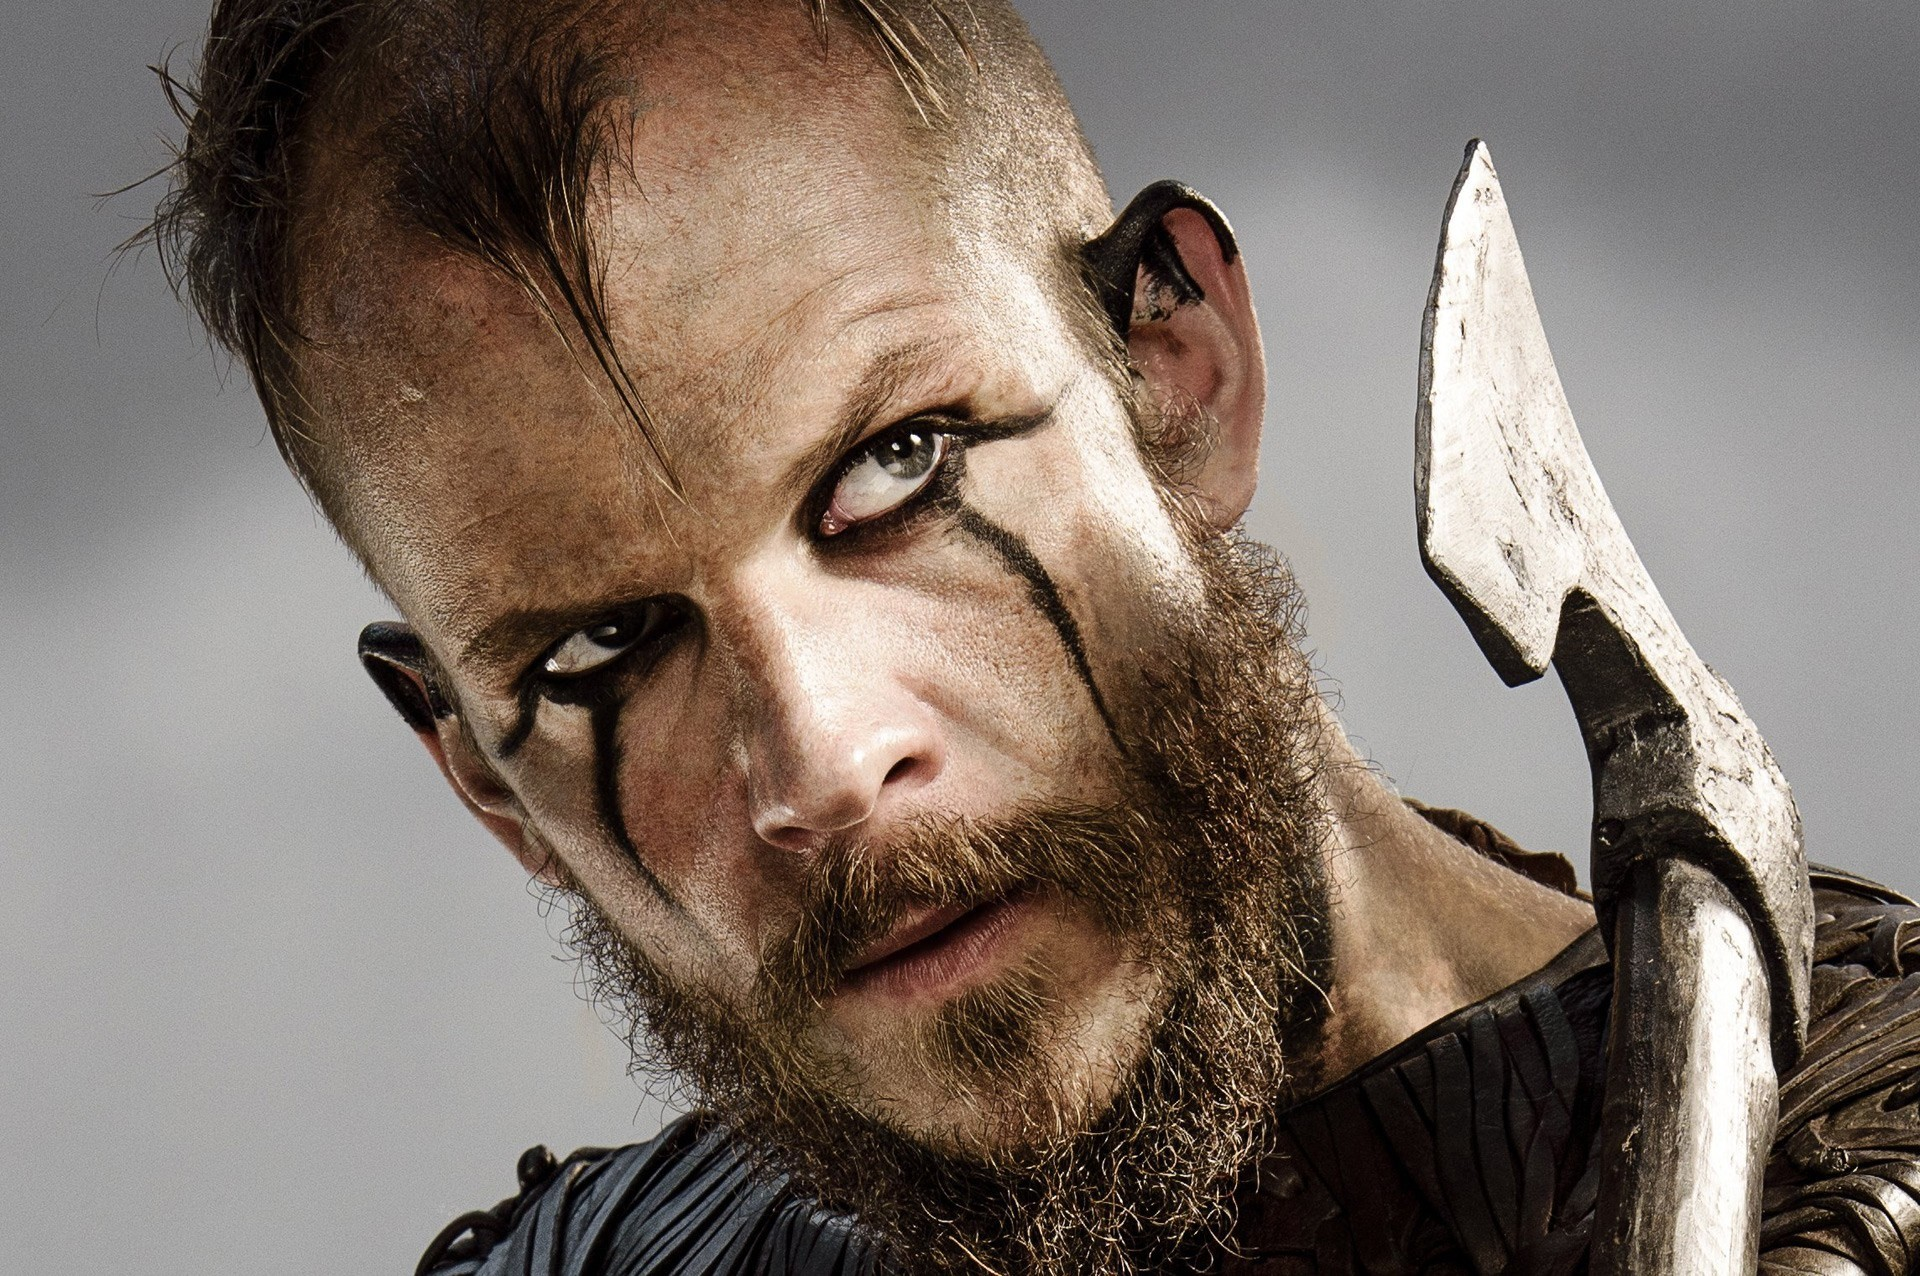 Vikings Wallpapers 1920×1080 Vikings Wallpapers (41 Wallpapers) | Adorable  Wallpapers